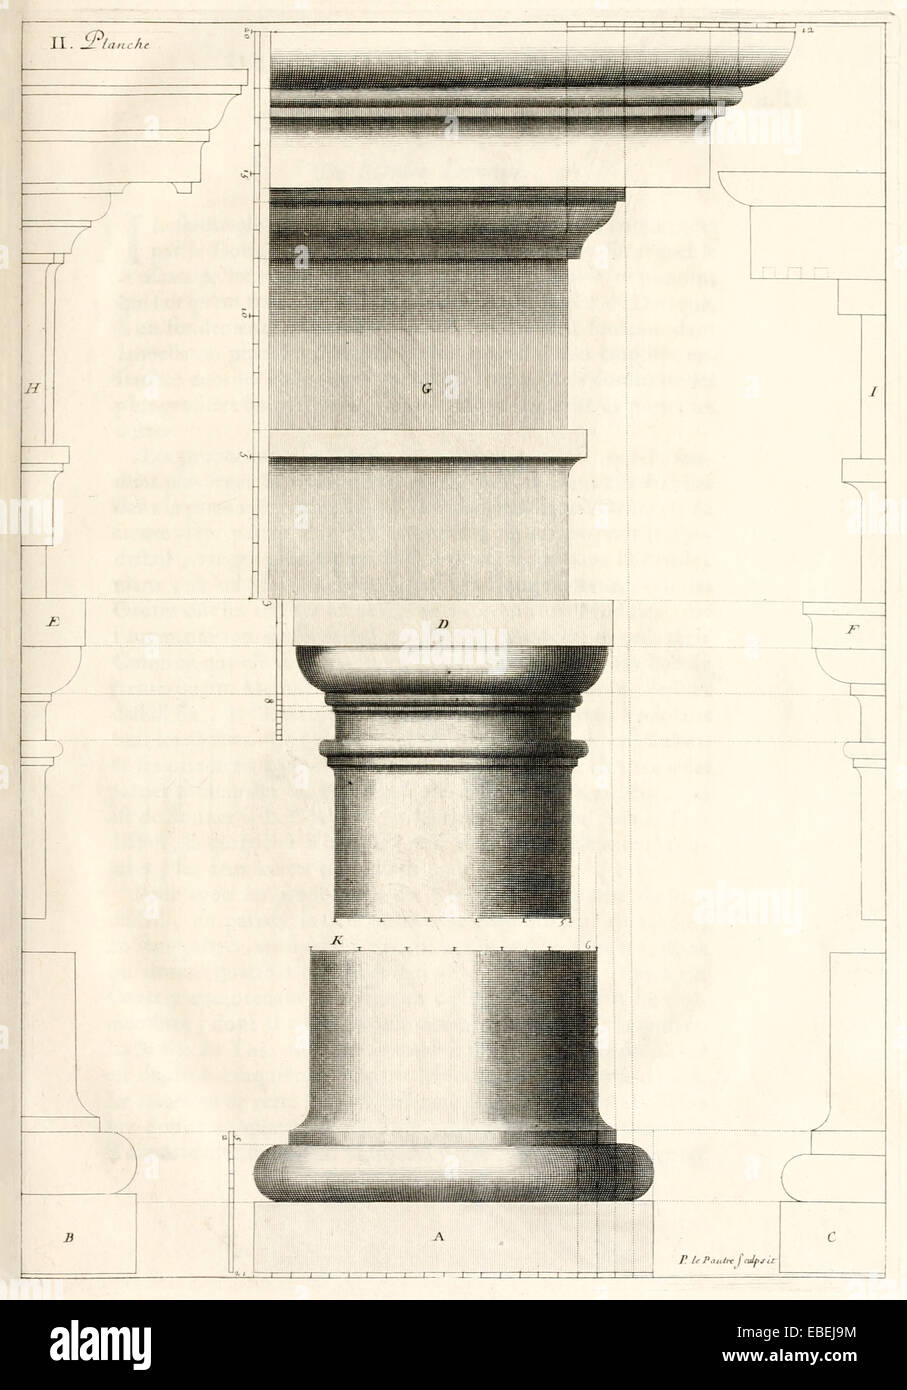 Tuscan Order Column By Claude Perrault French Renaissance Architect Illustration See Description For More Information